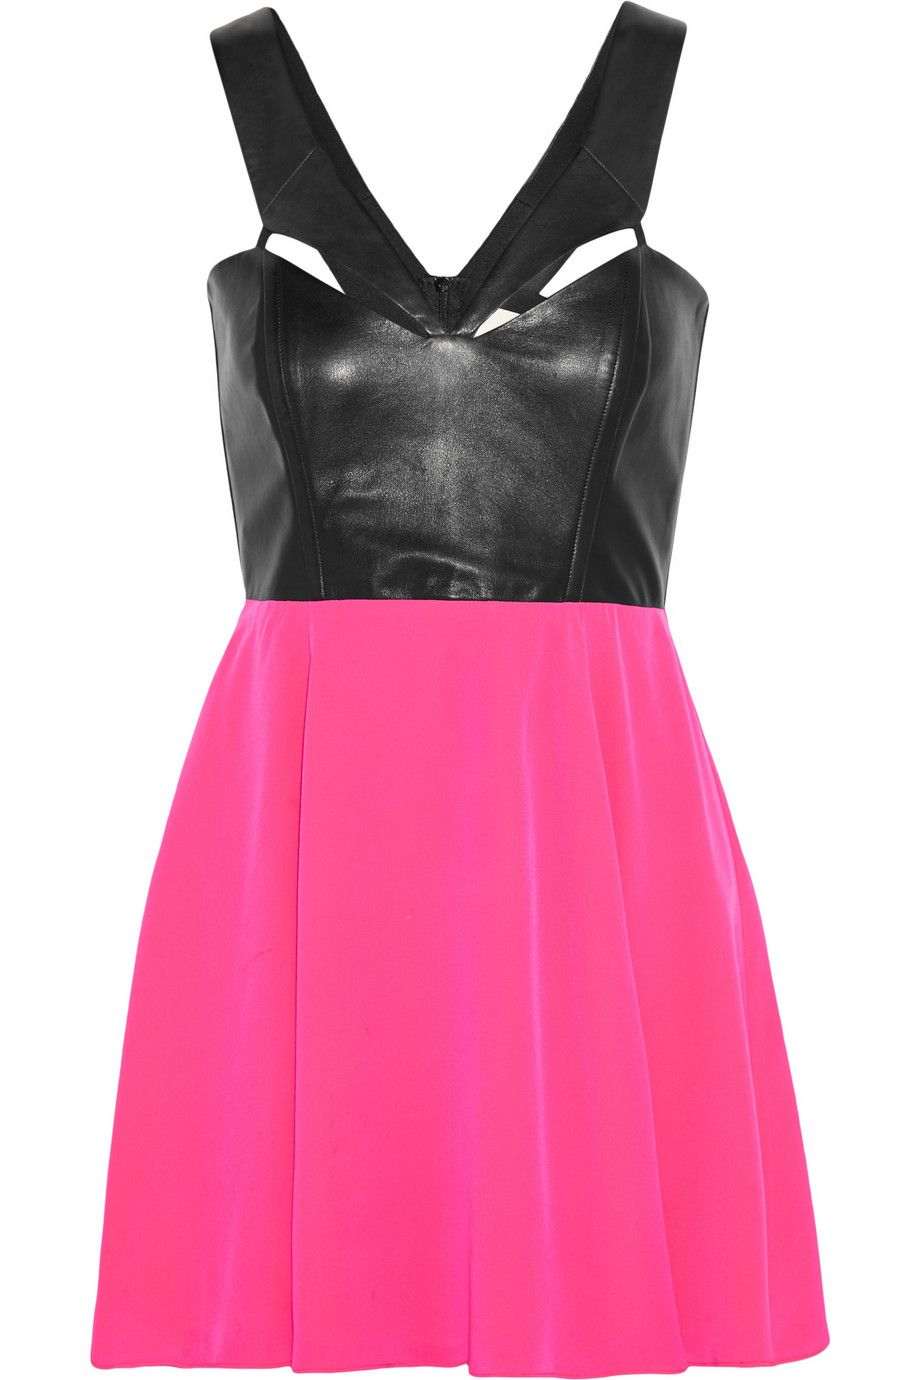 be6f0d9337f Color-block leather and silk mini dress - Mason by Michelle Mason black and  bright-pink mini dress- Made in the USA- Leather